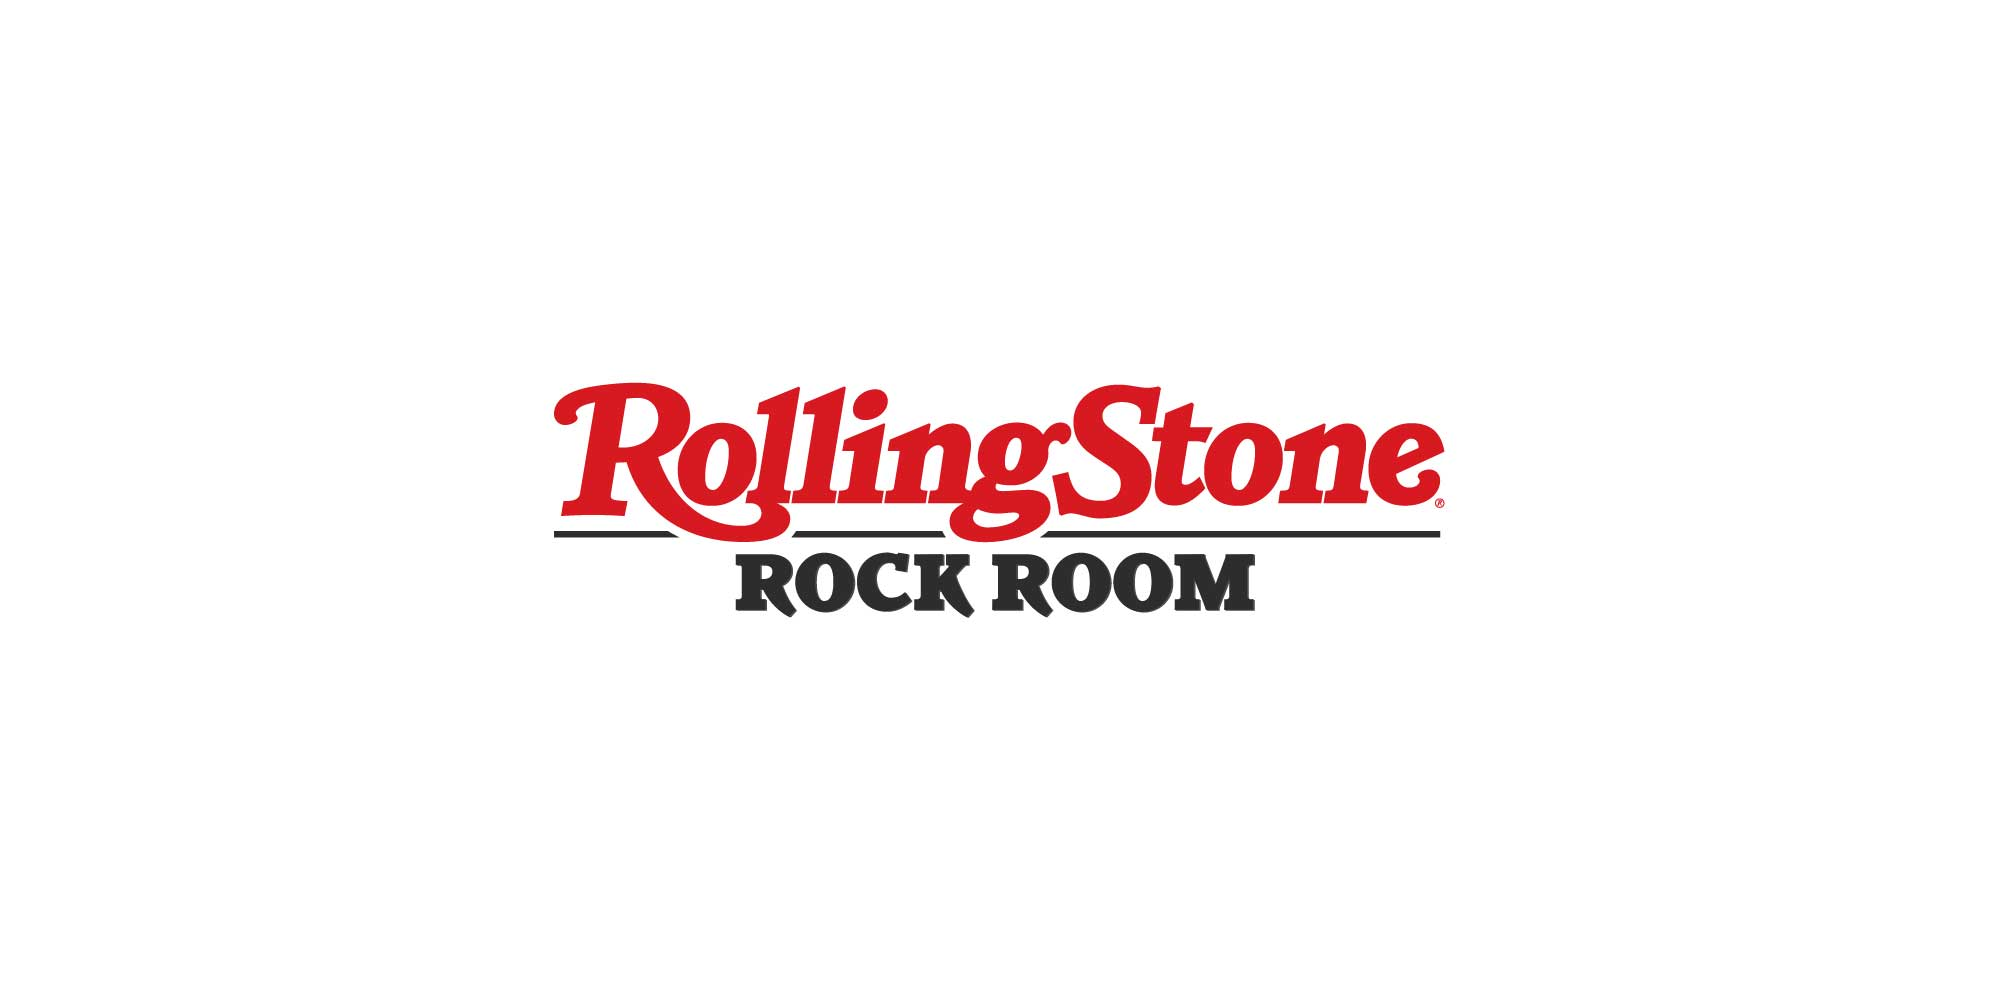 Rolling Stone Rock Room in Partnership with Holland America Line